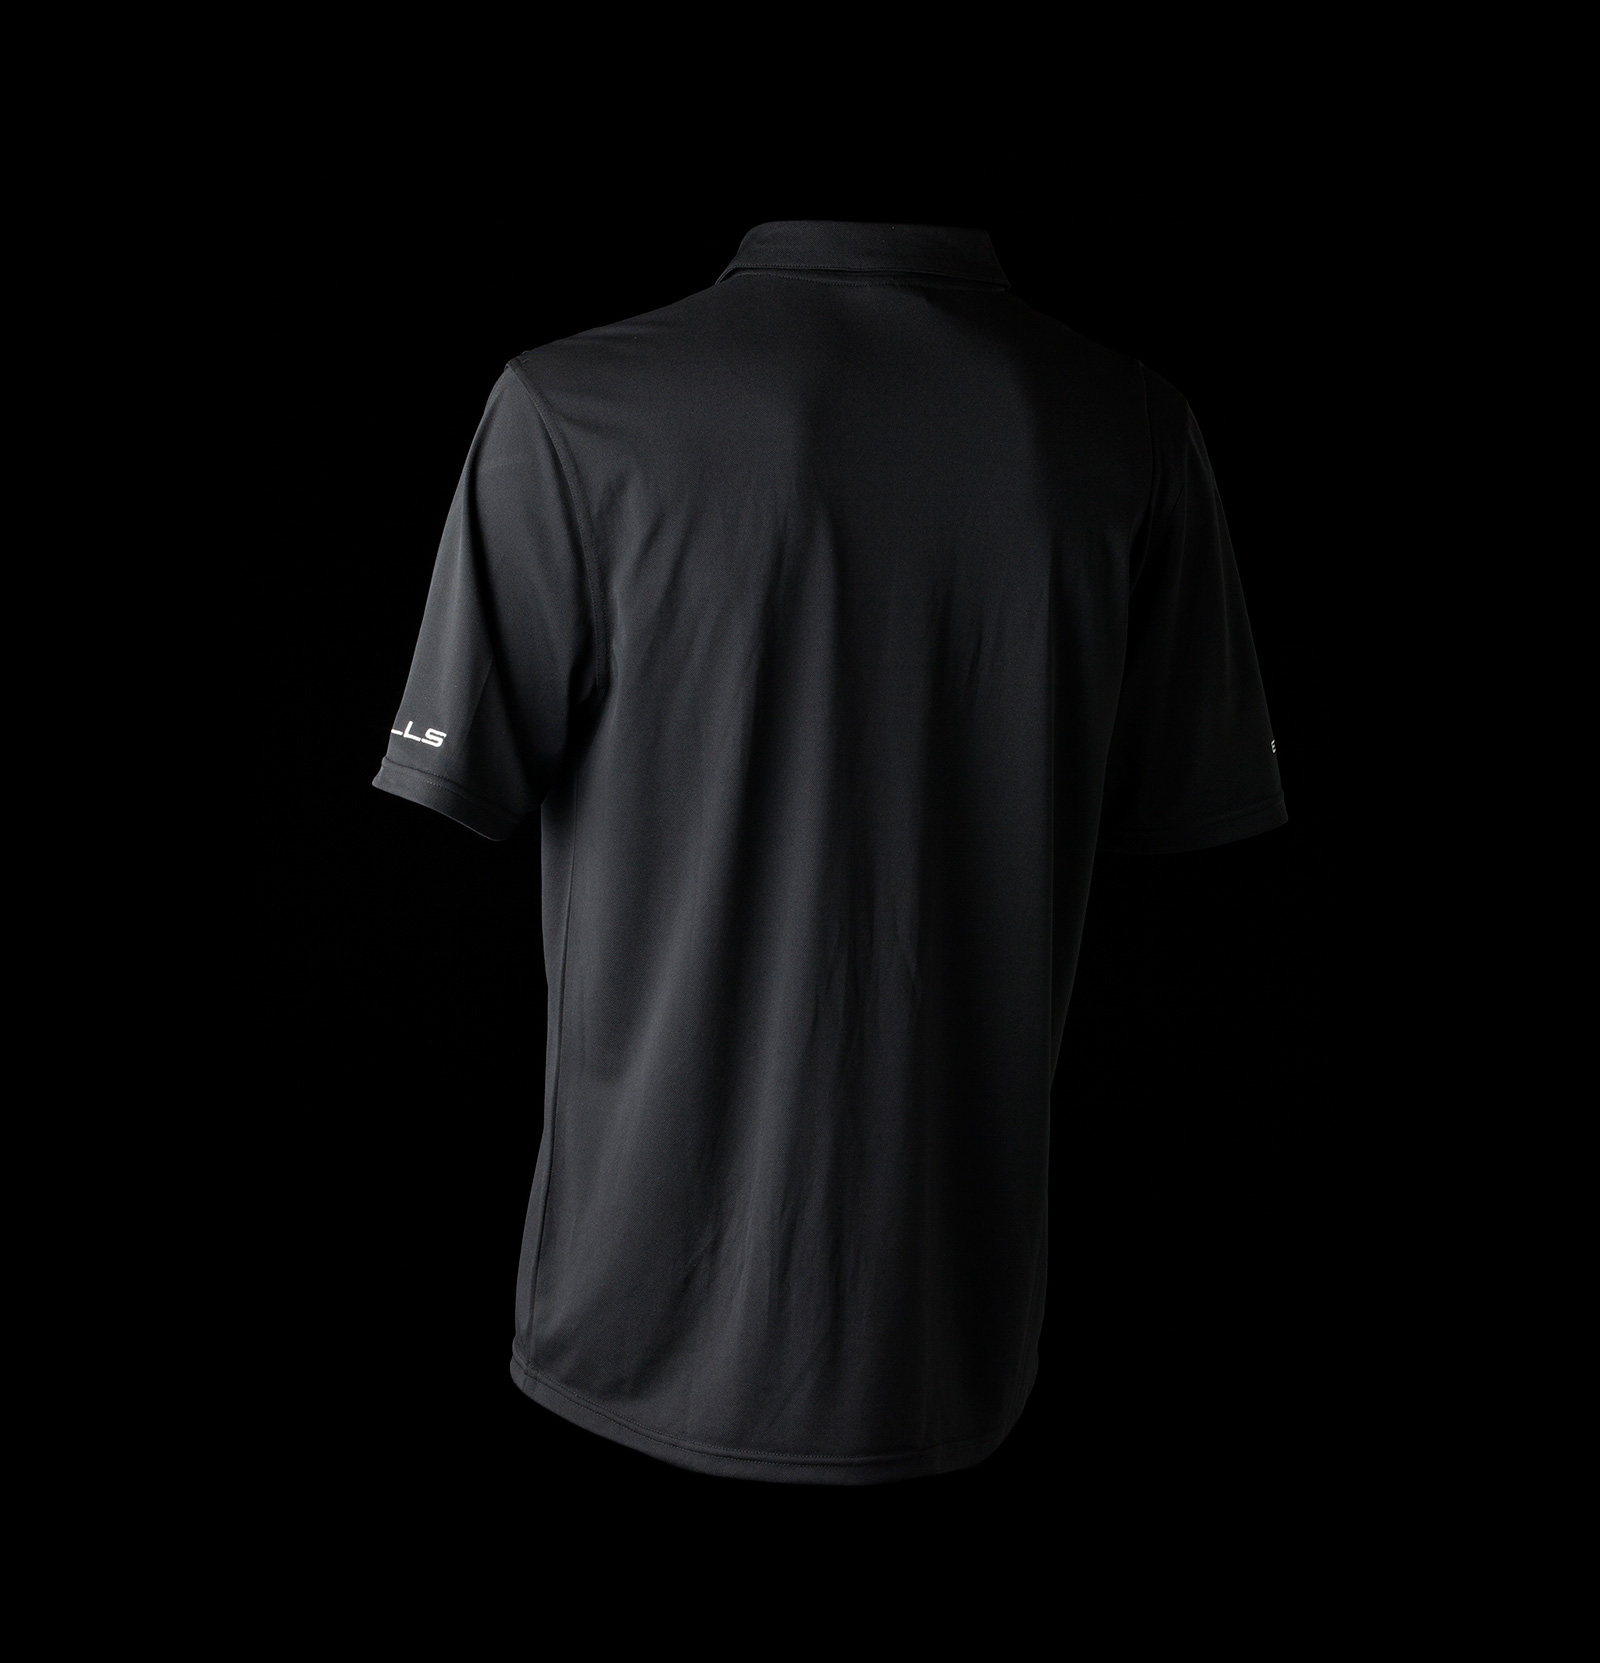 Excel-Polo-Shirt-Promo-33